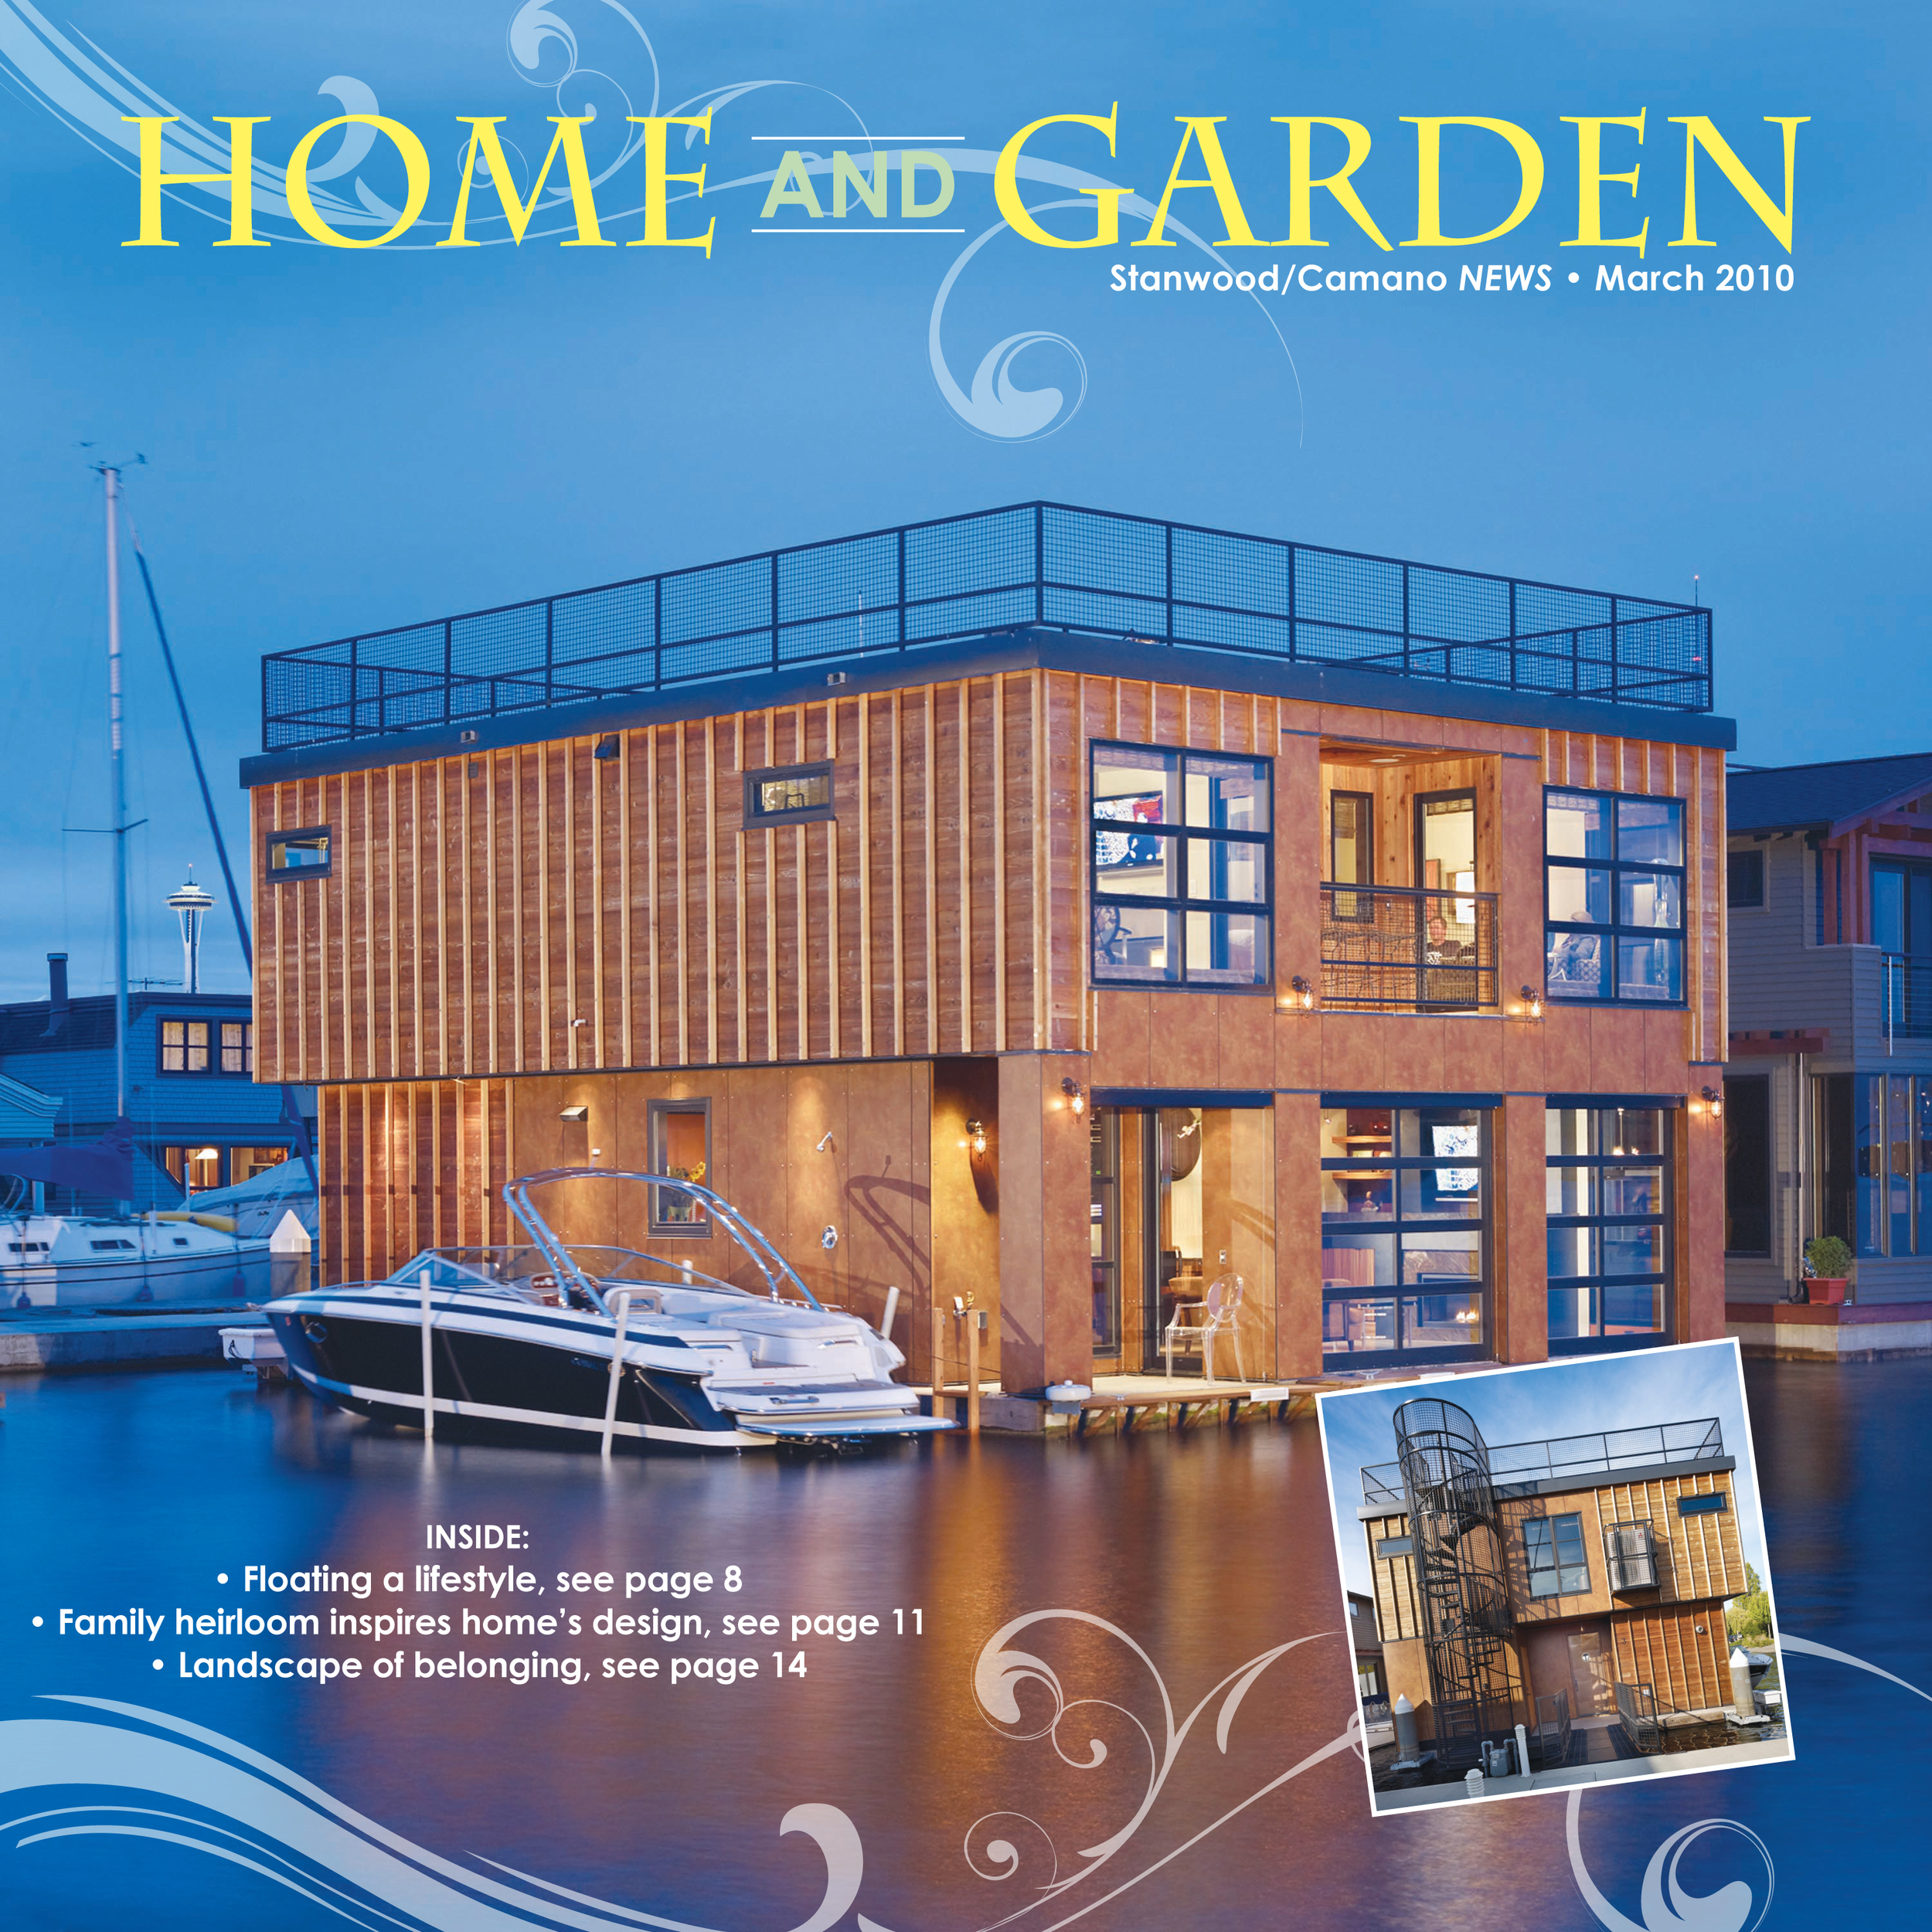 Home & Garden Special Section Cover